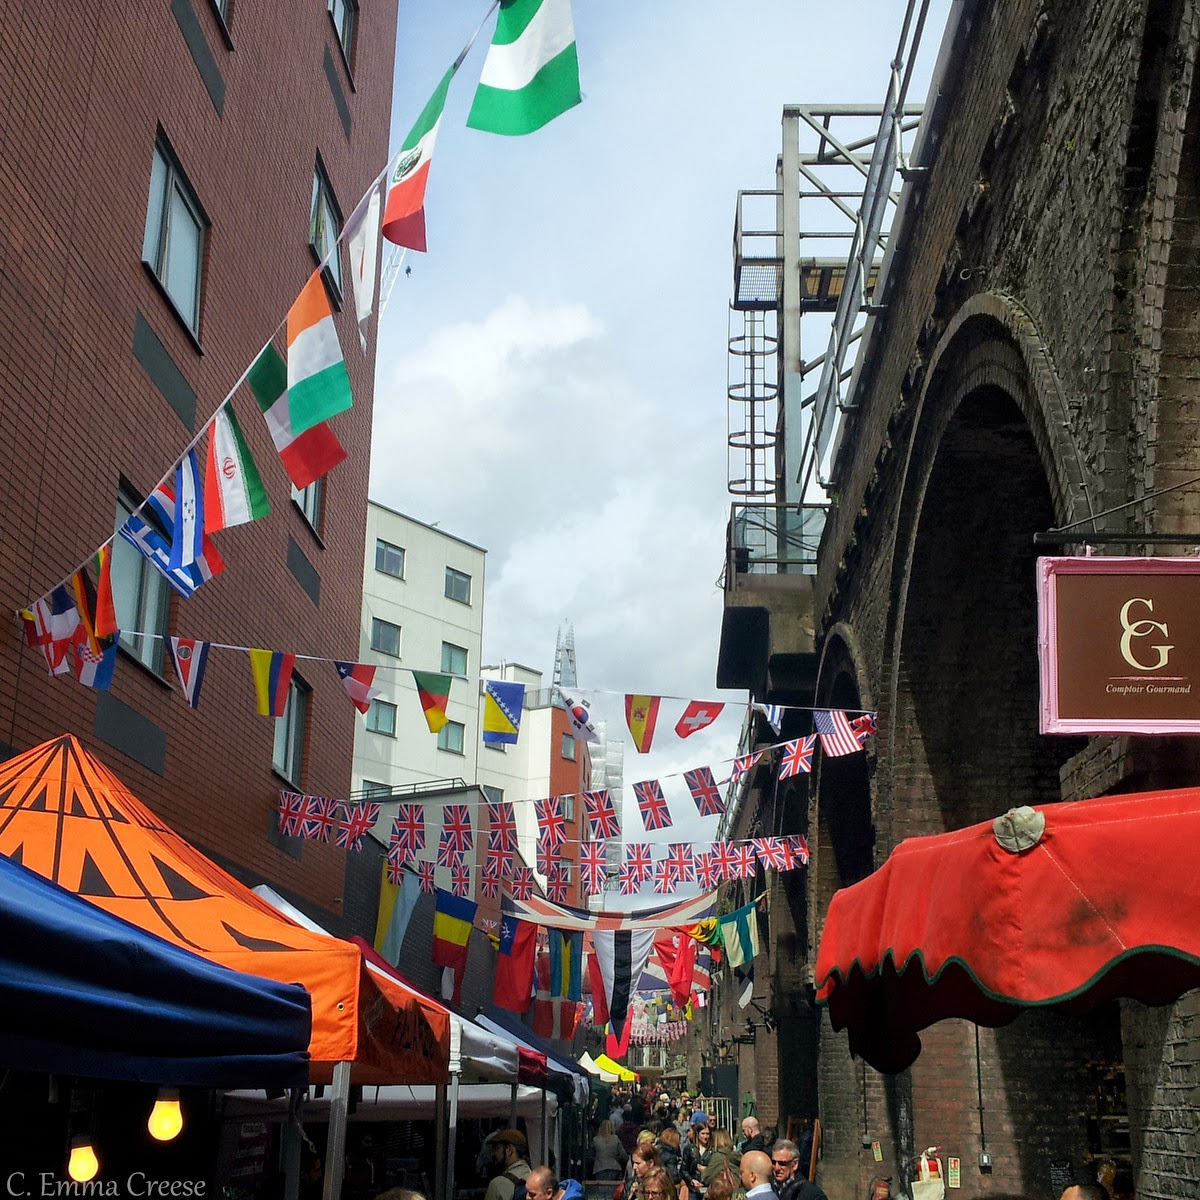 Maltby-Street-Market: London's-best-kept-secret-Adventures-of-a-London-Kiwi